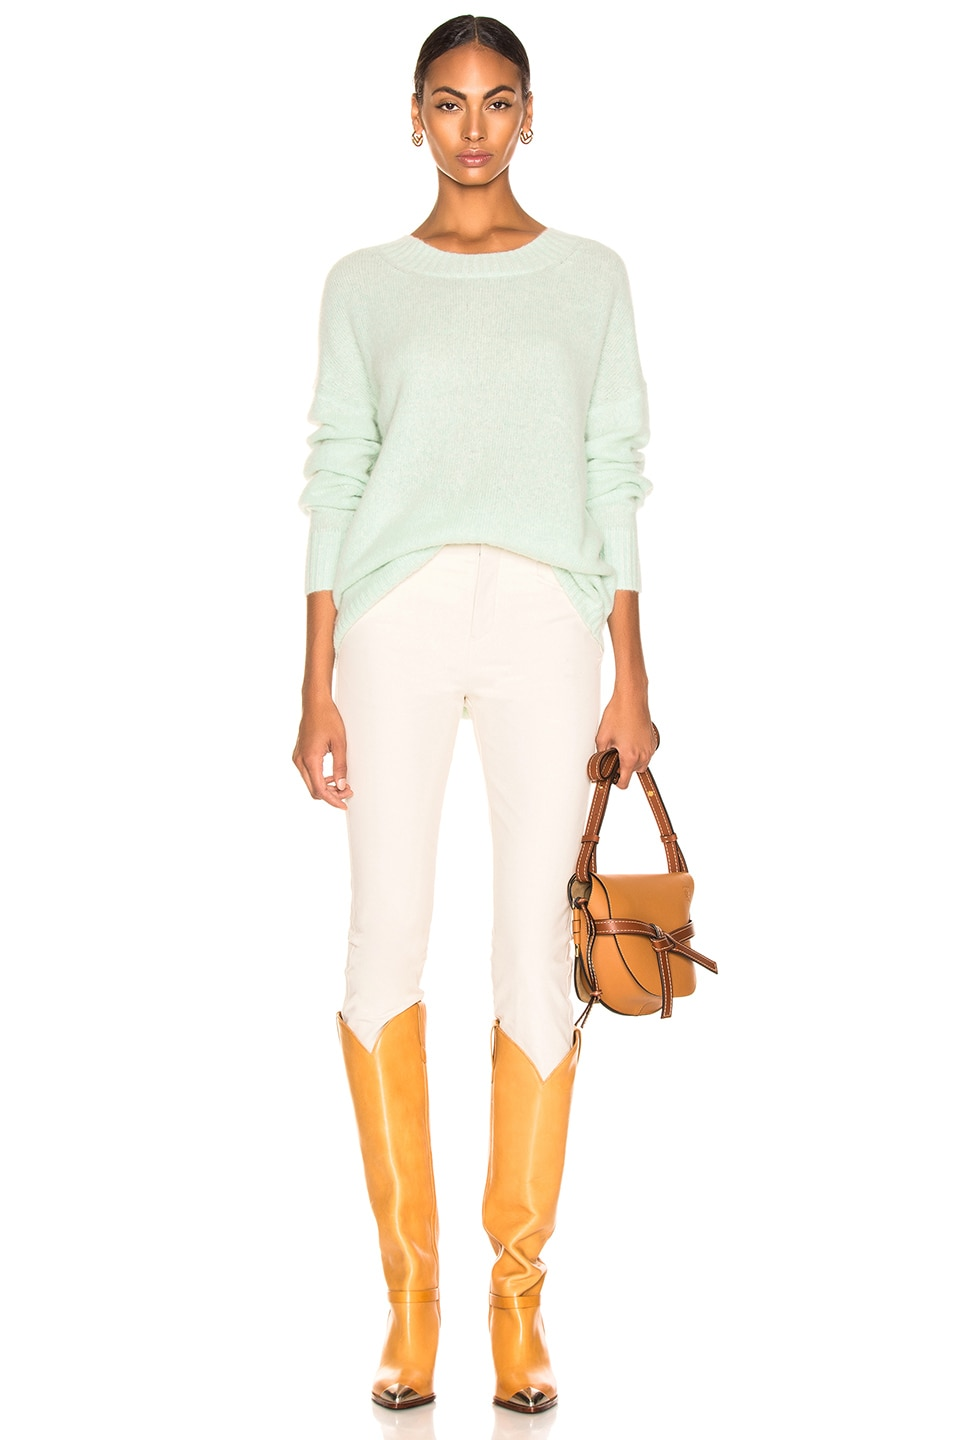 Soyer Anna Cashmere Scoopneck Celadon low-cost